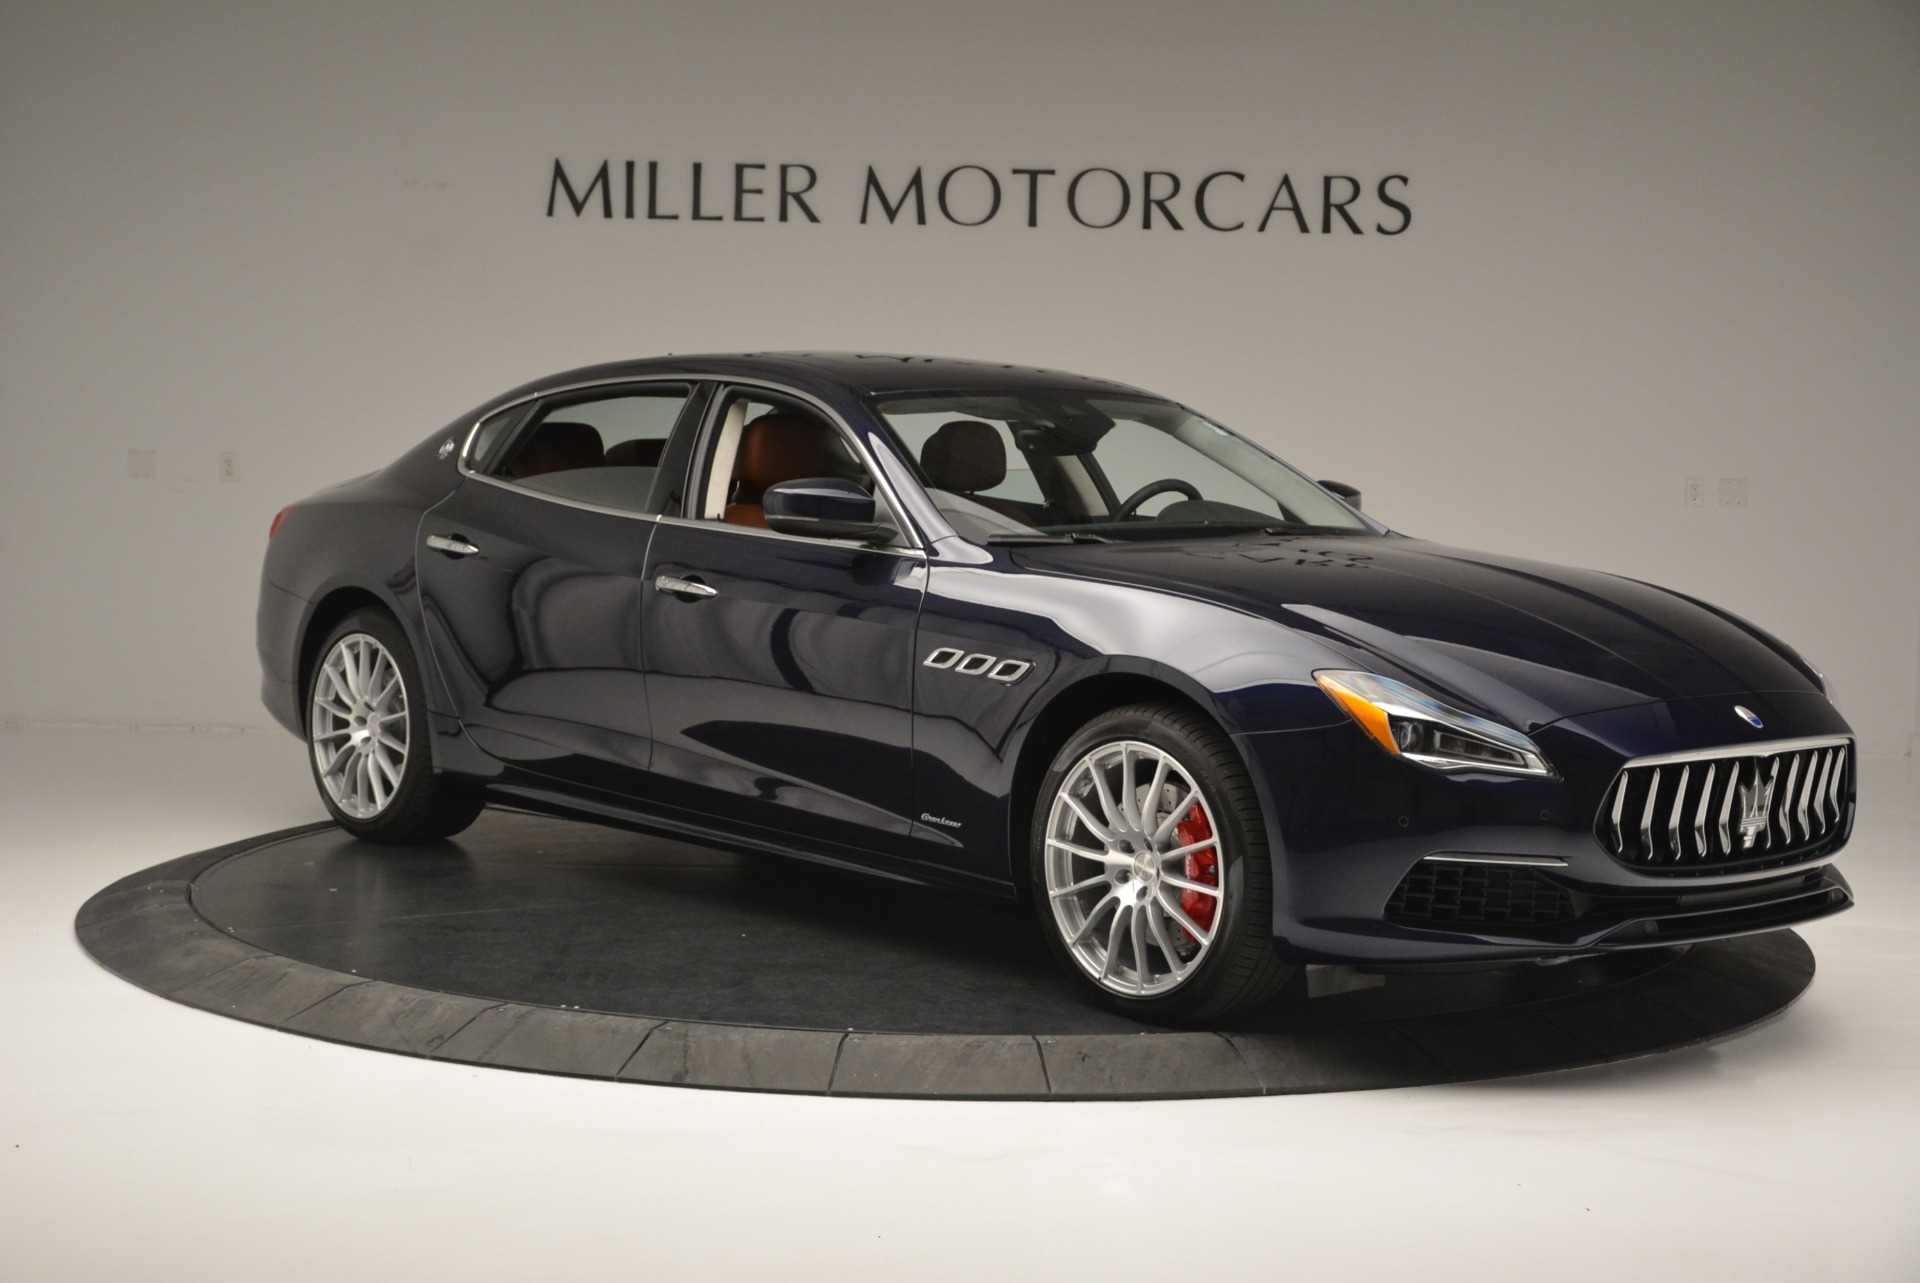 New 2018 Maserati Quattroporte S Q4 GranLusso For Sale In Greenwich, CT 1859_p12